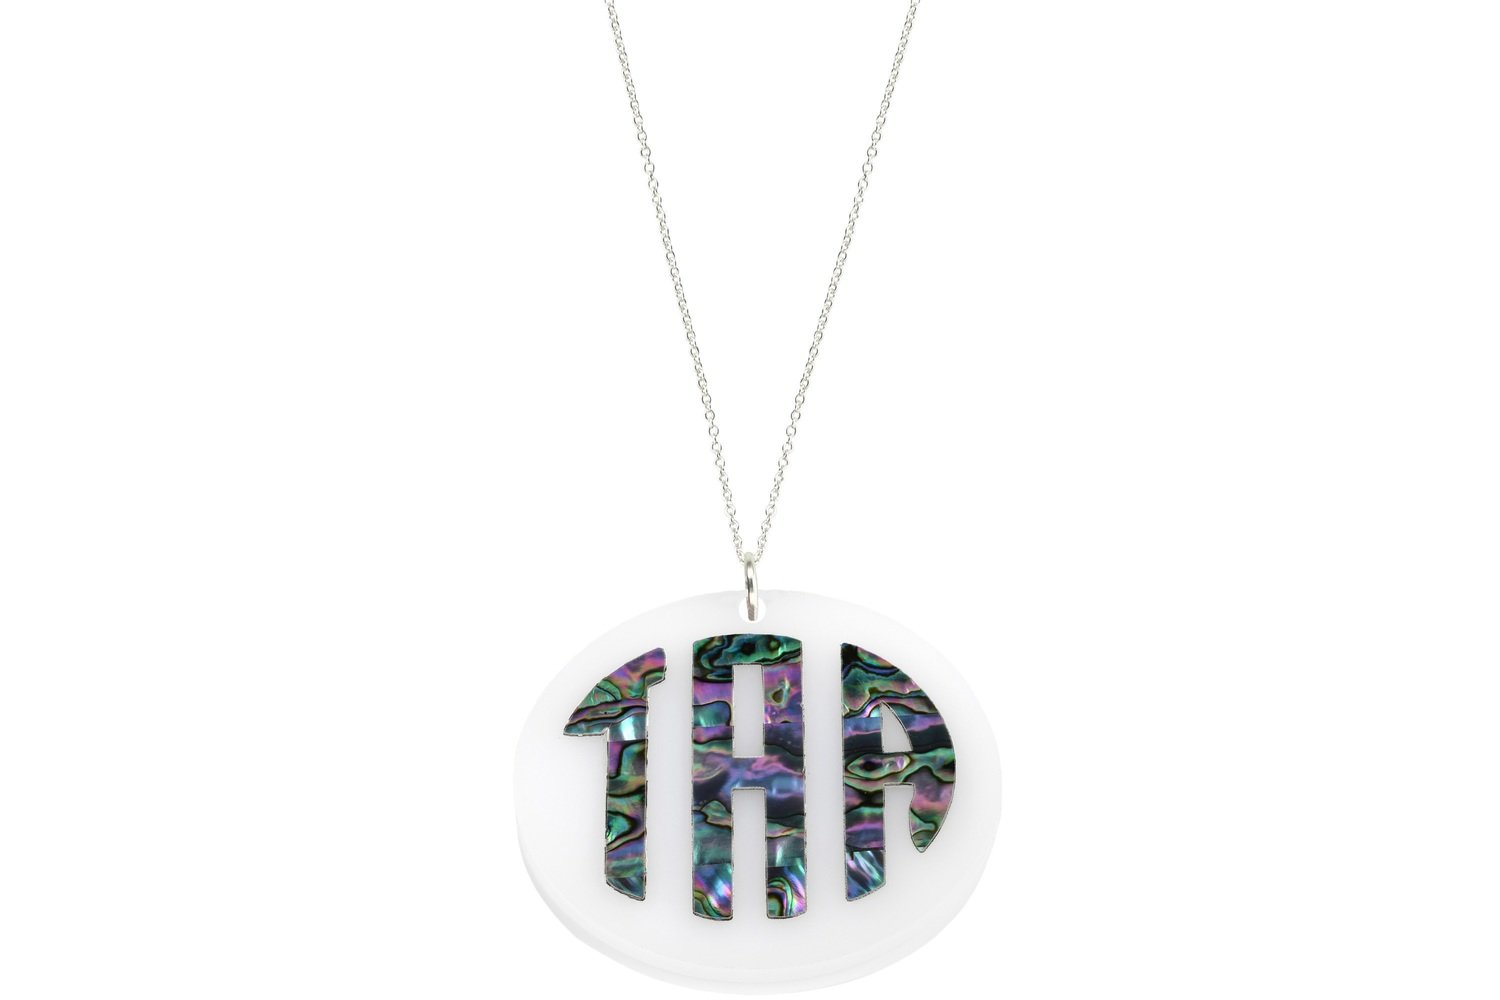 Mother of Pearl Monogram Pendant with Chain Necklace